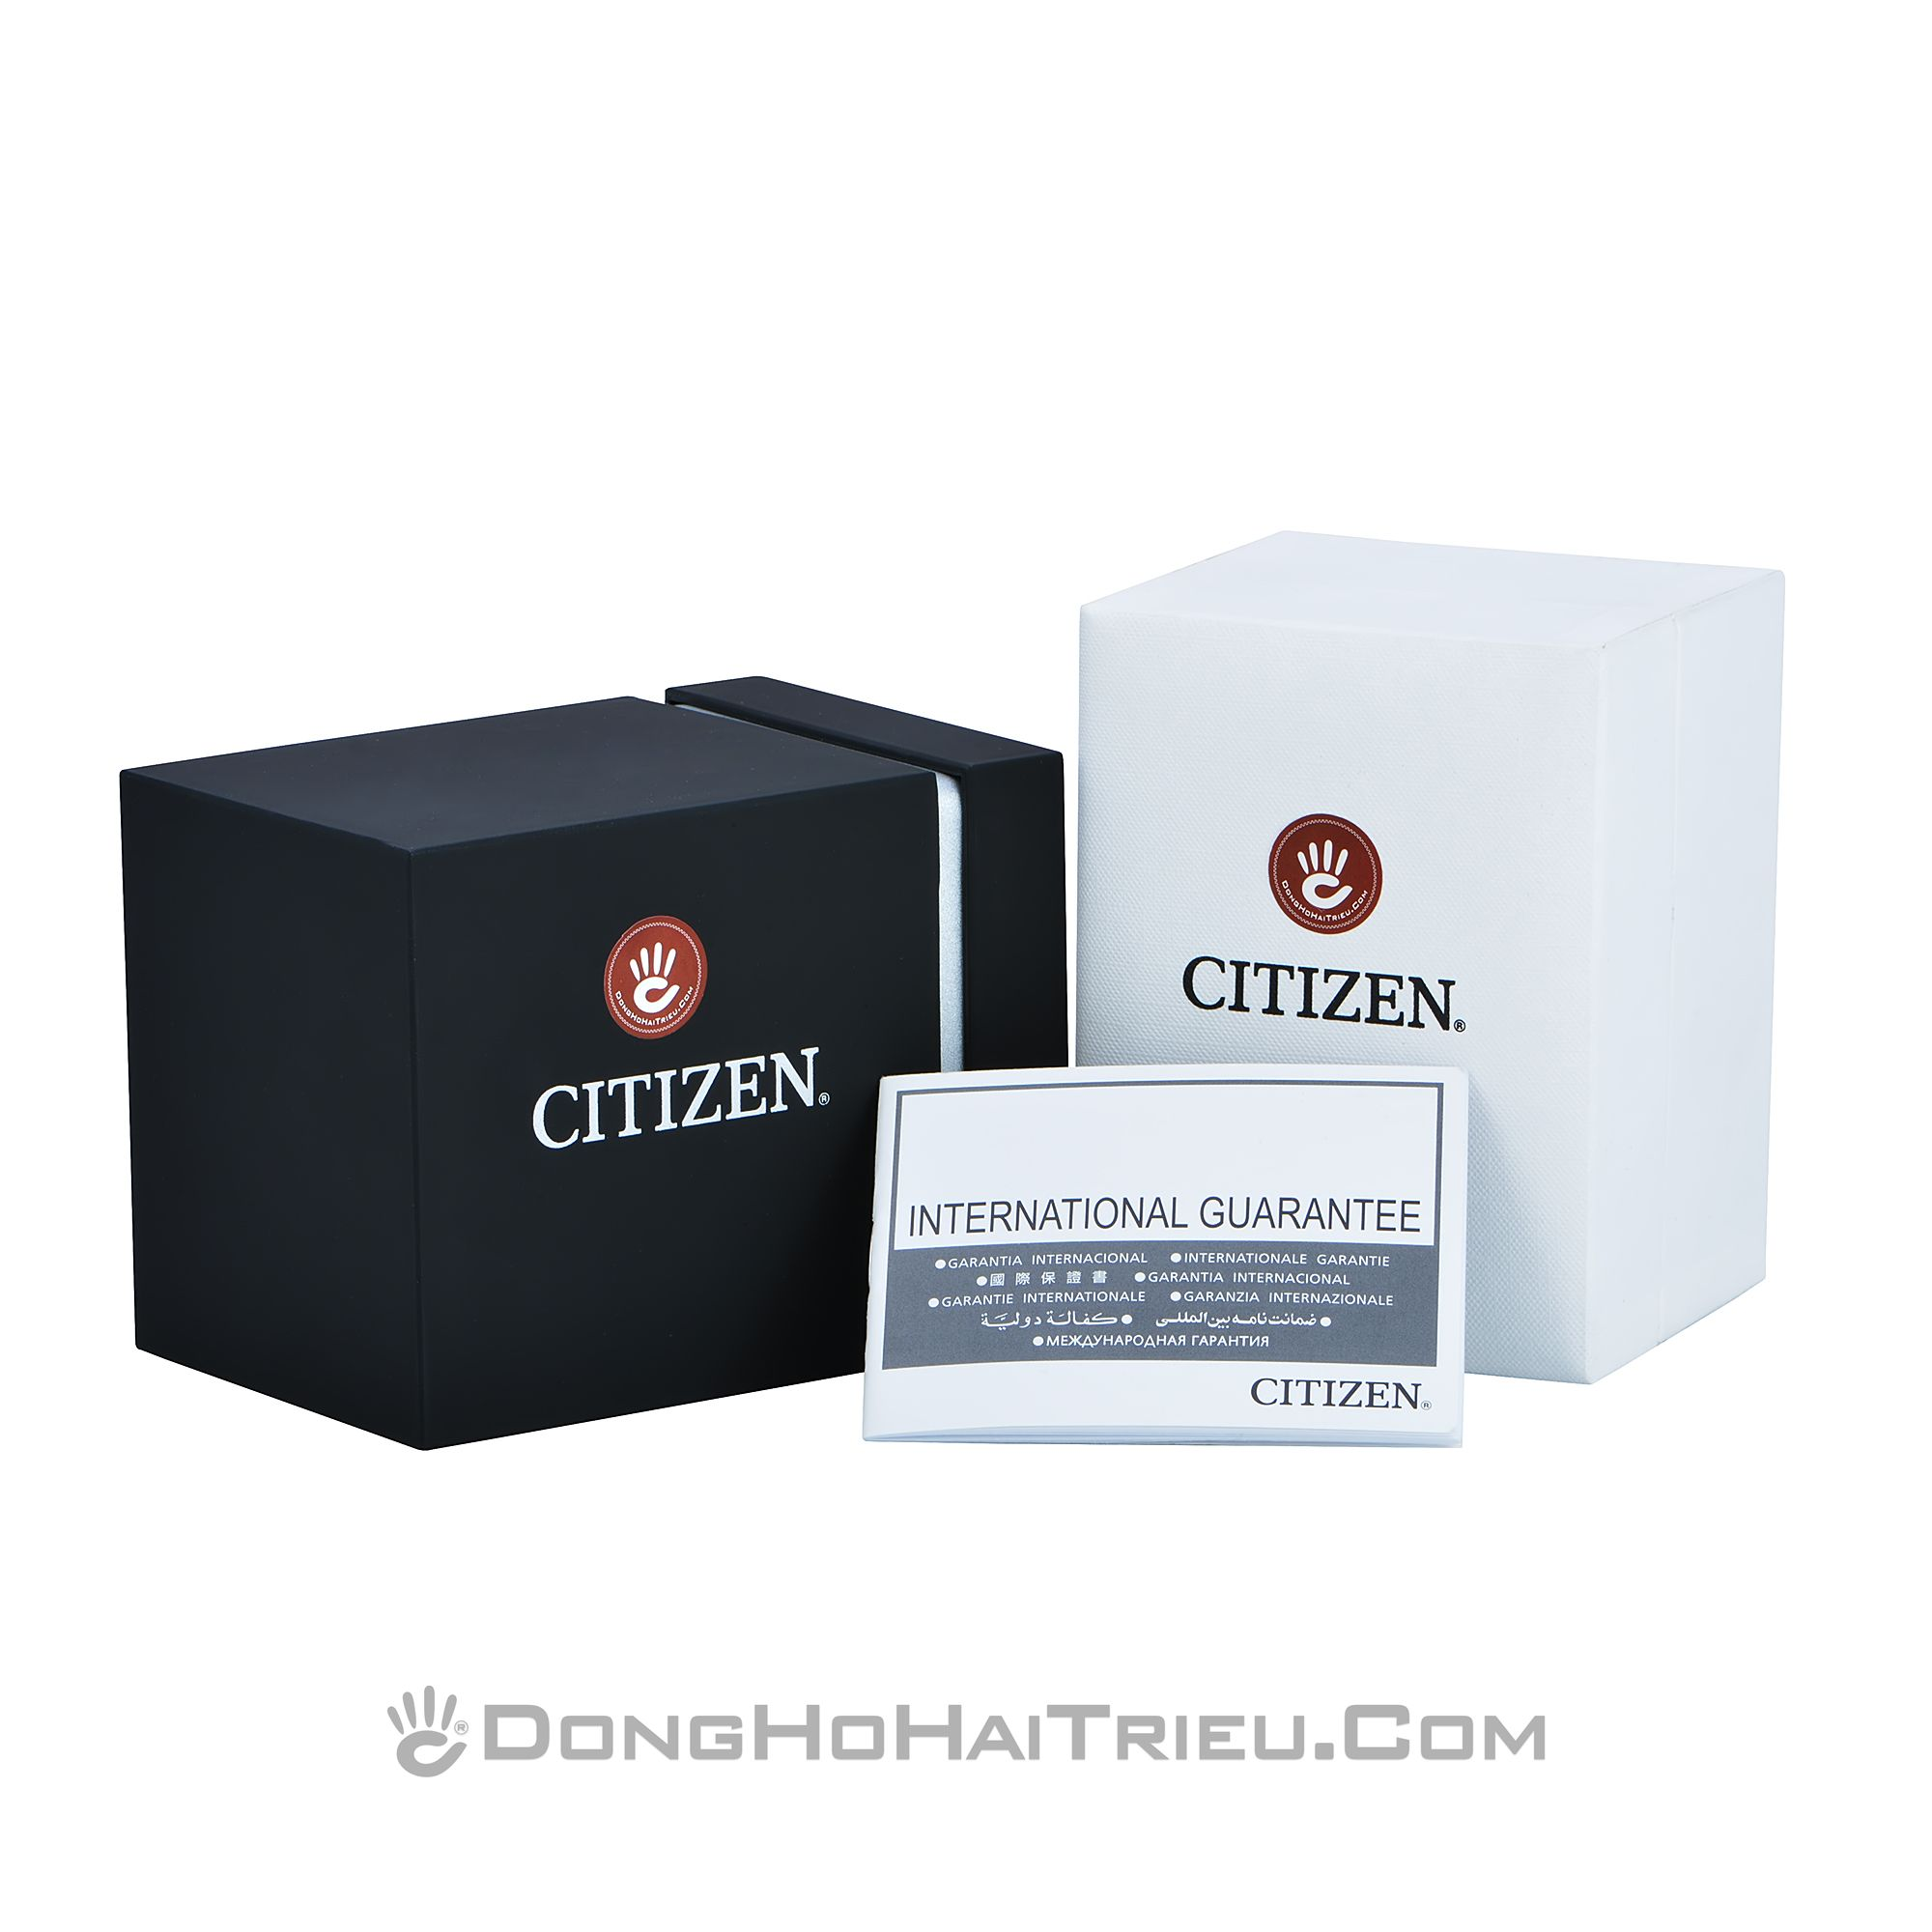 Citizen-Box1